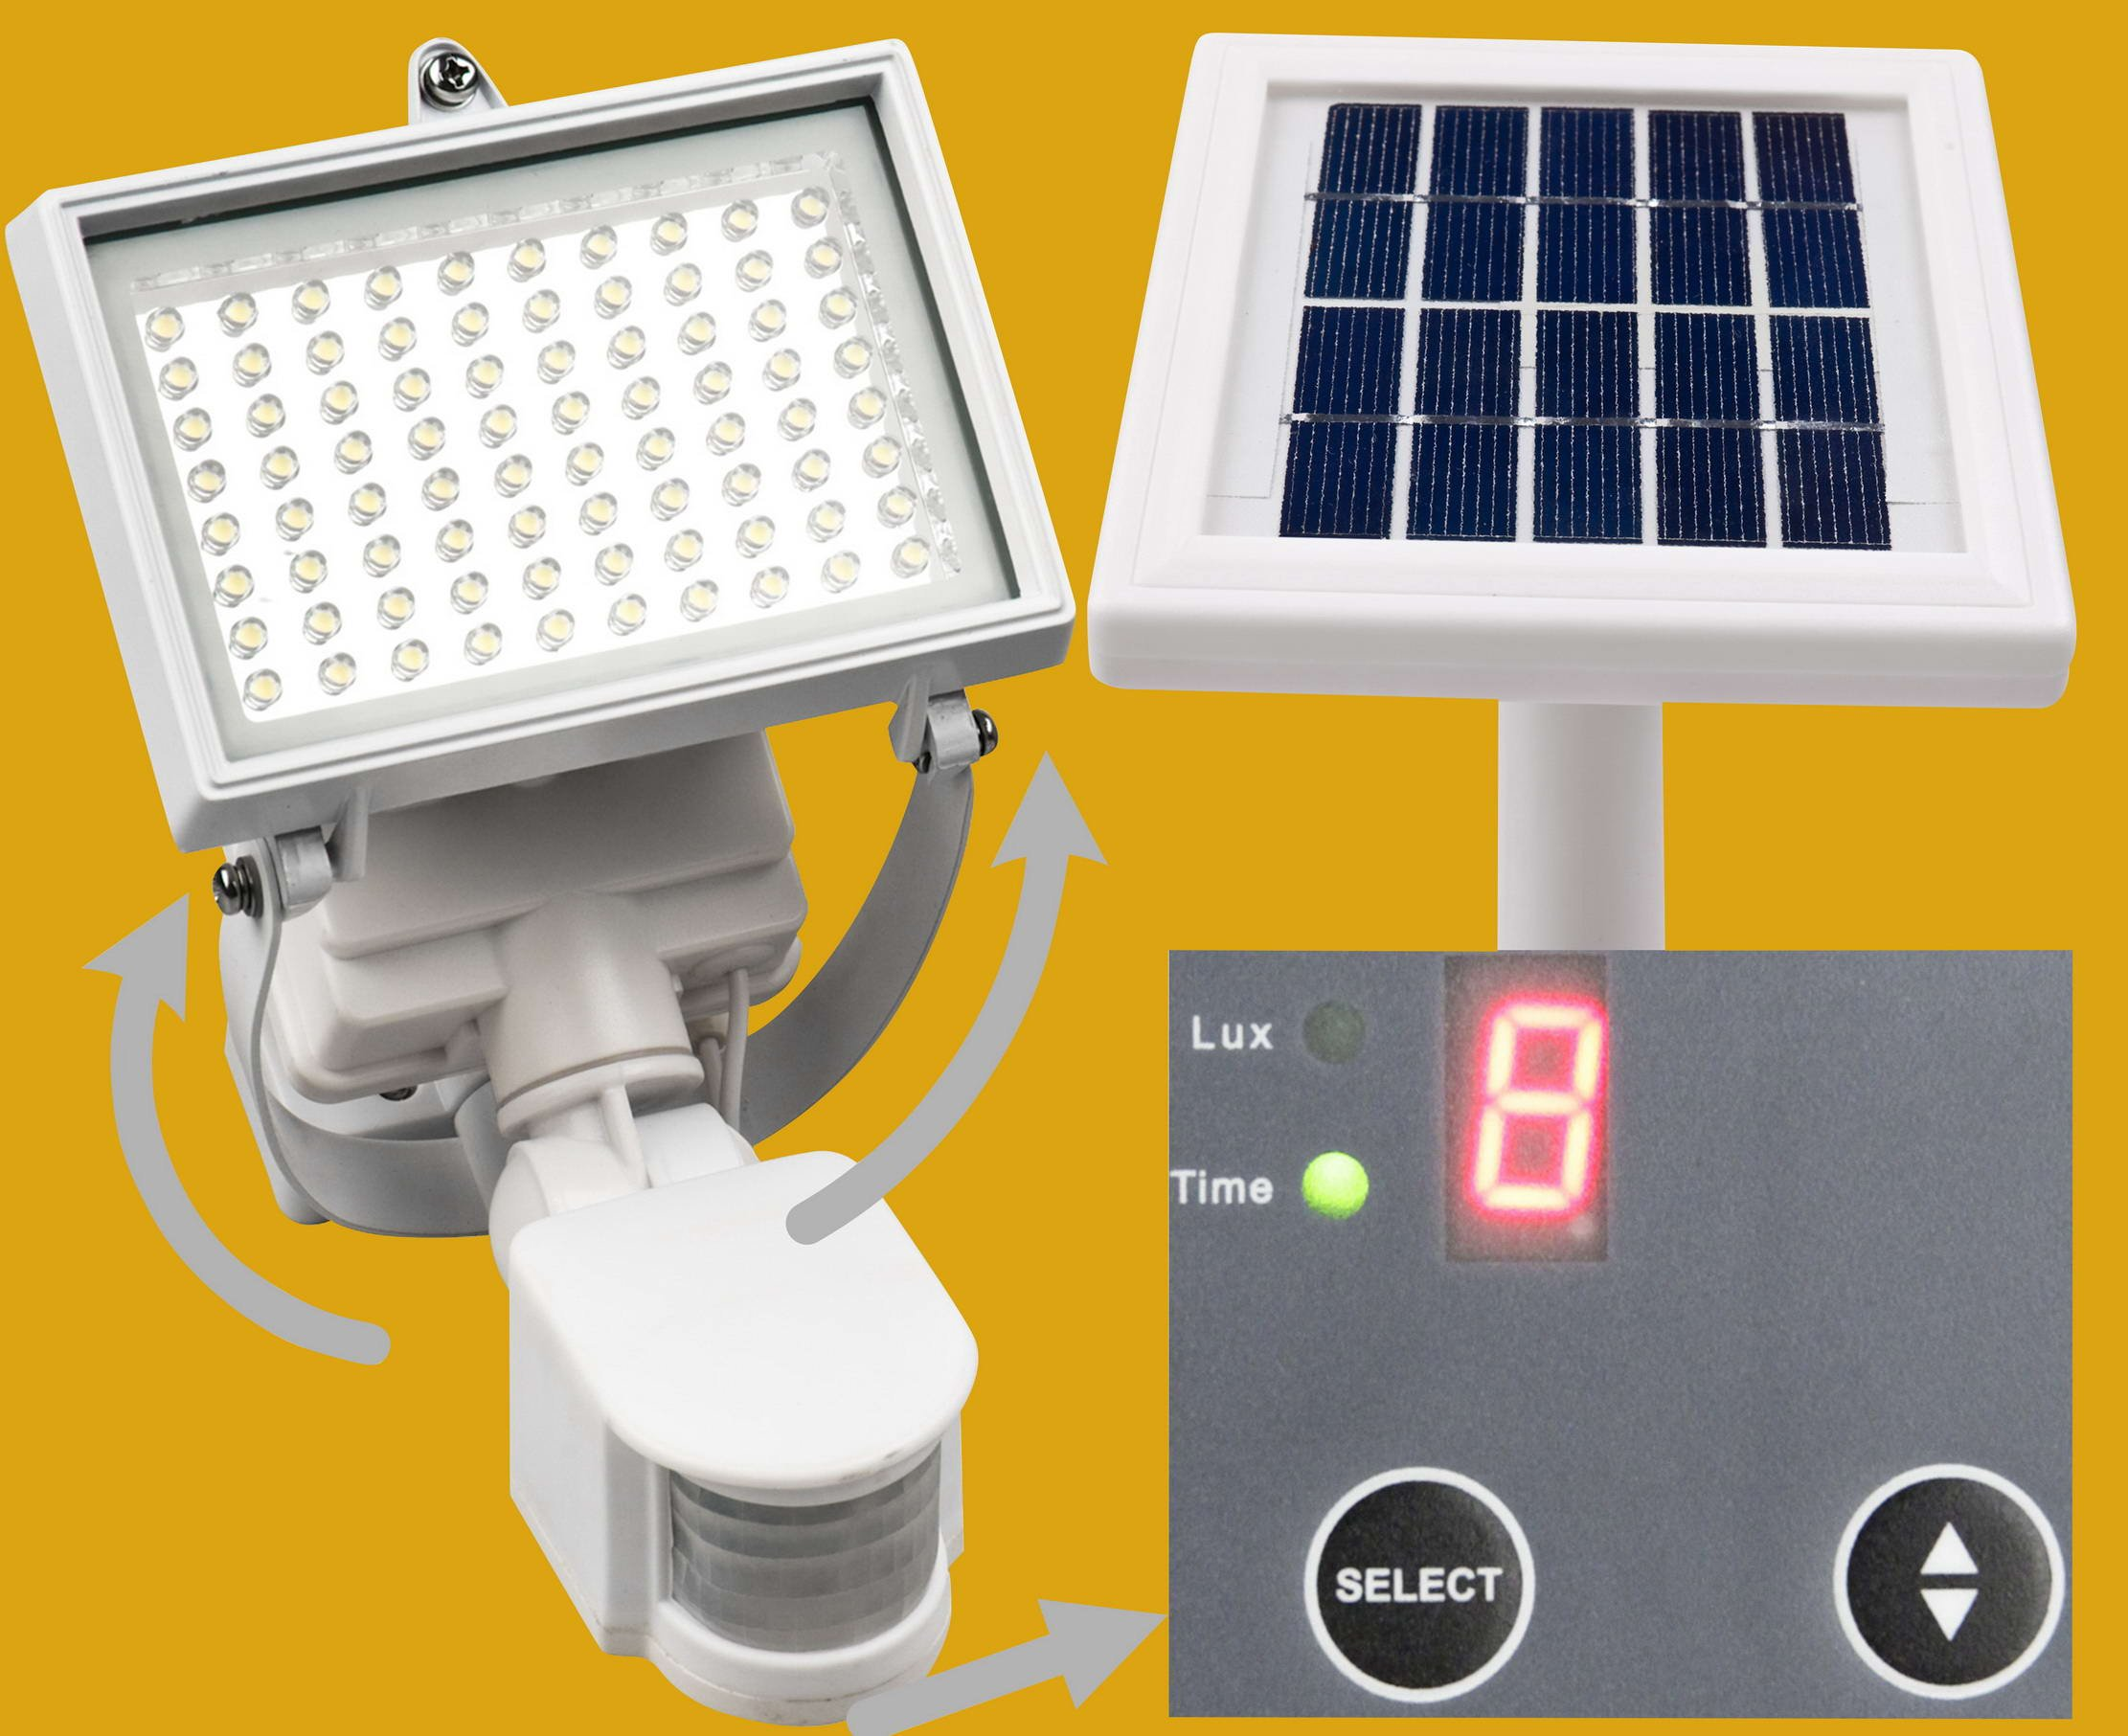 MicroSolar - Warm White - 80 LED - Waterproof - Lithium Battery - Digitally Adjustable TIME & LUX with Buttons --- Adjustable Light Fixture from Left to Right, Up and Down // Outdoor Solar Motion Sensor Light by MicroSolar